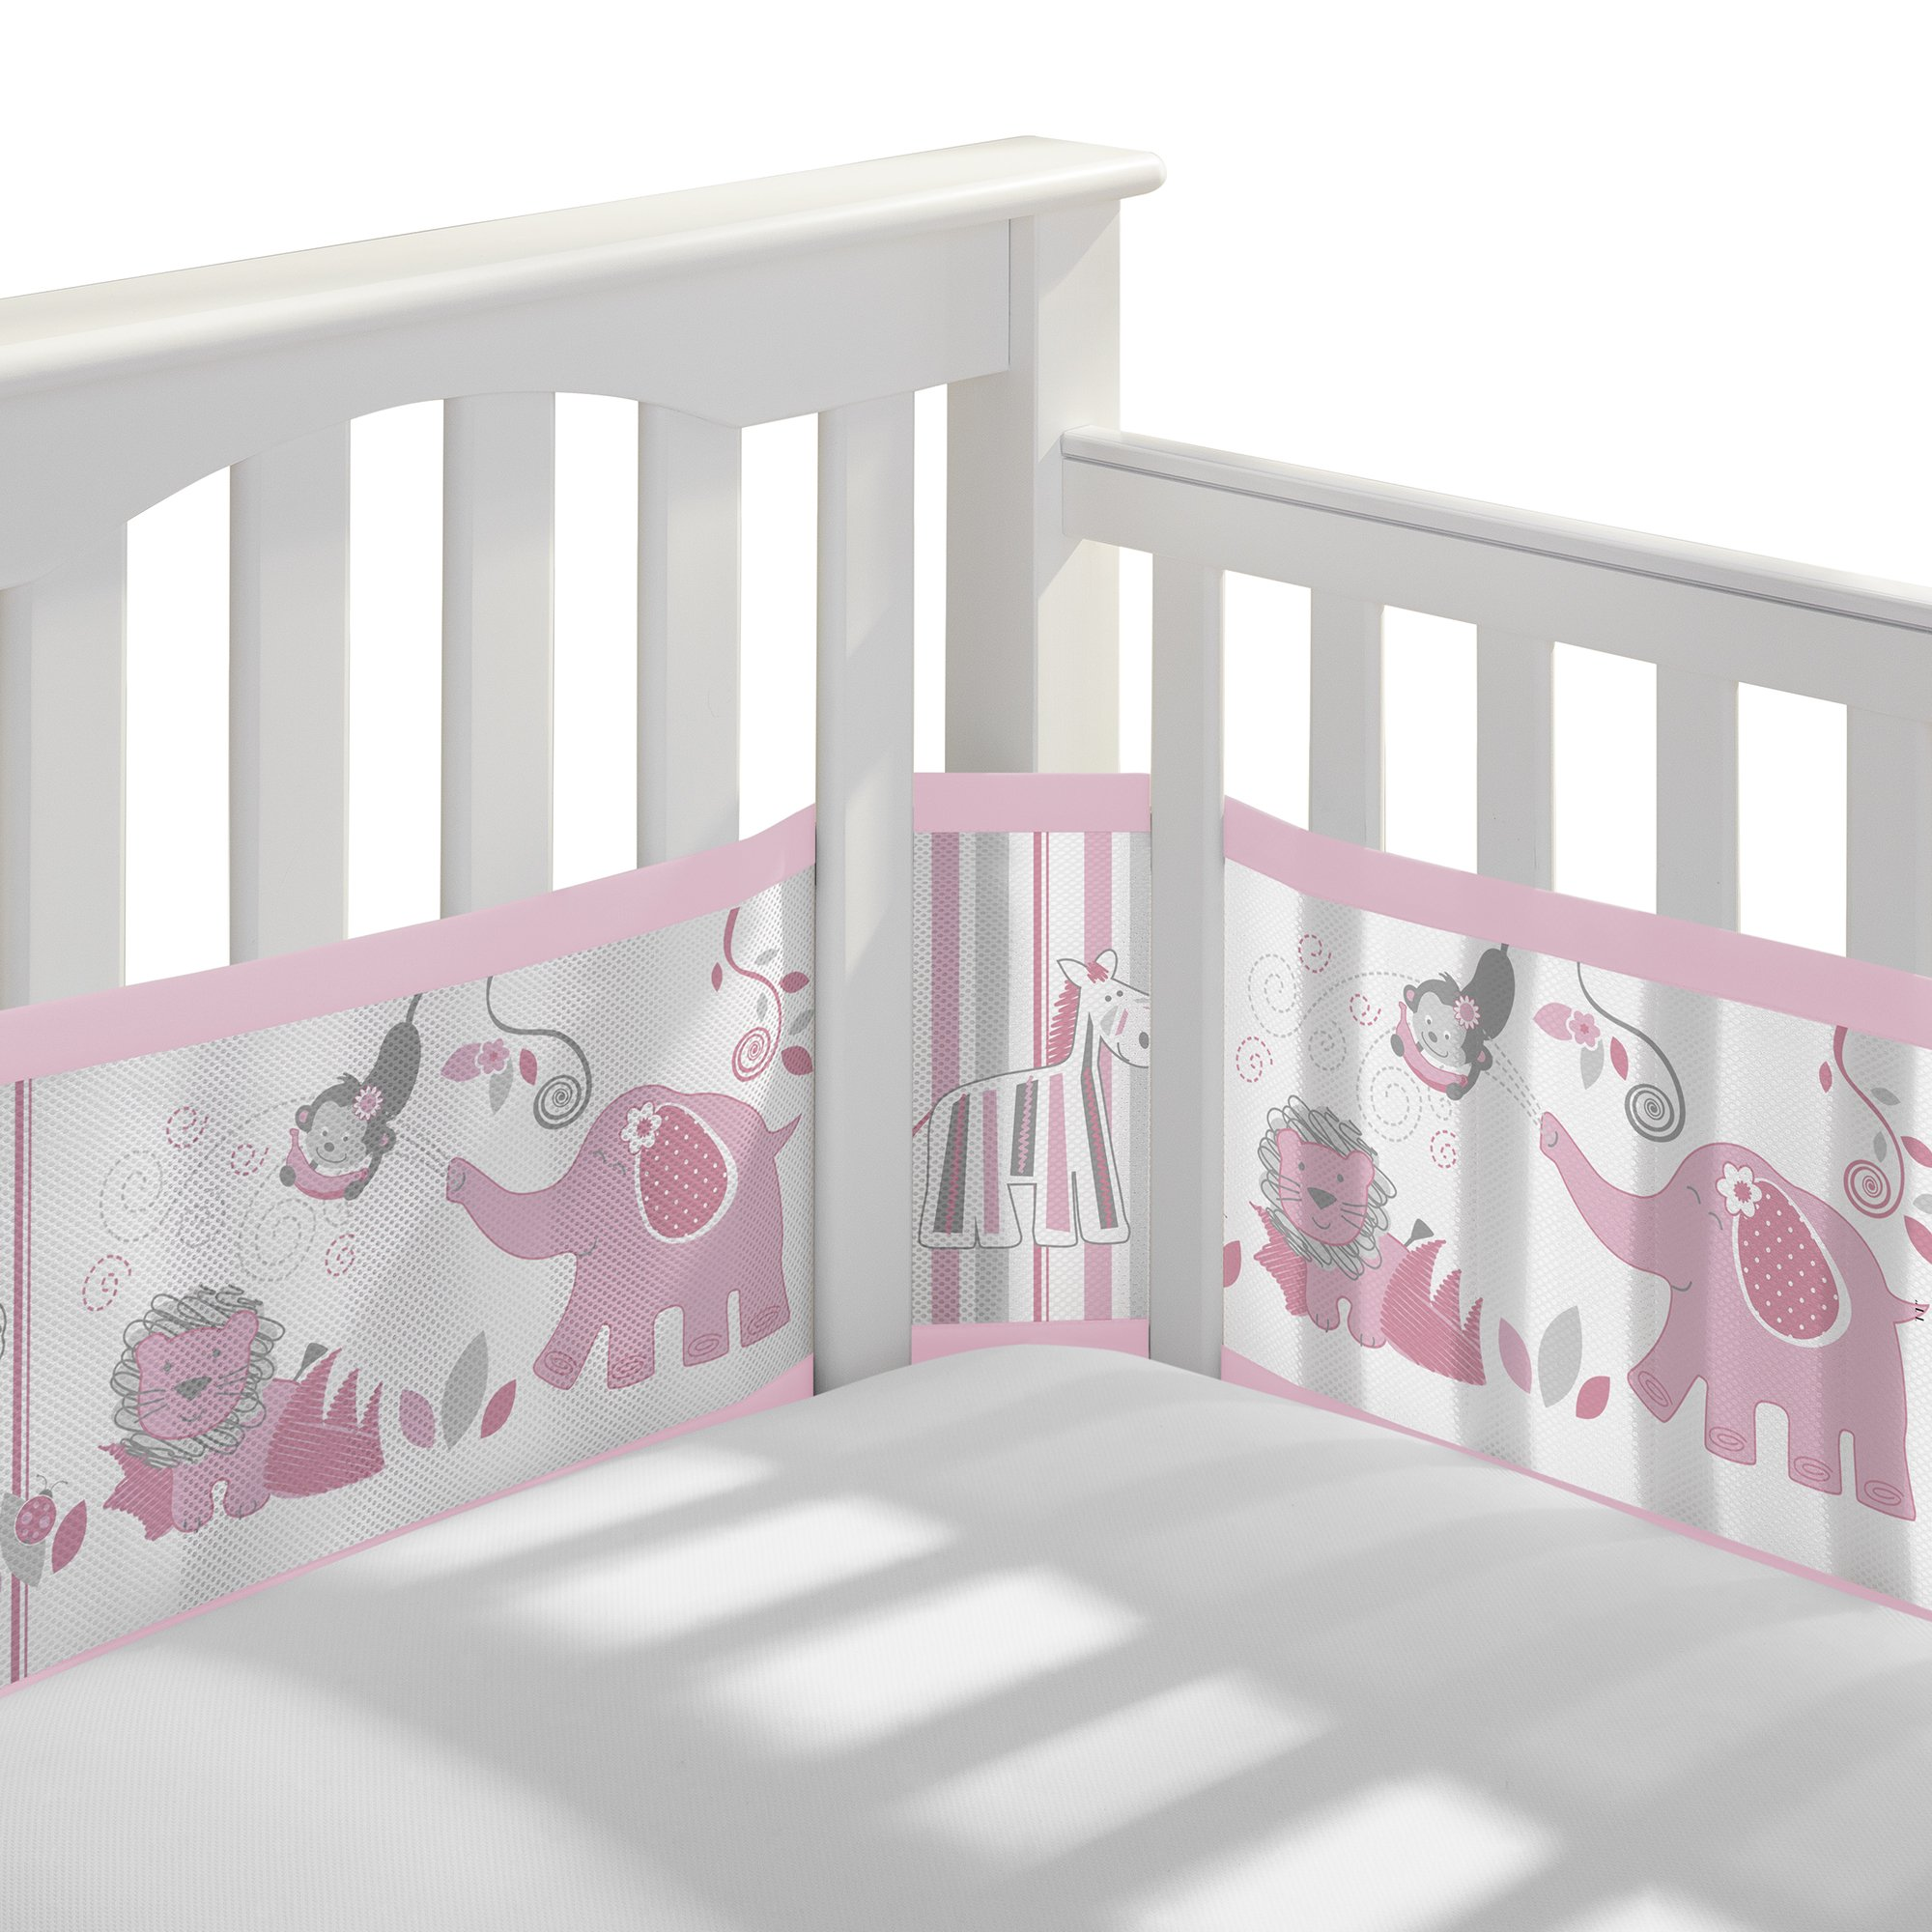 BreathableBaby Breathable Mesh Crib Liner- Safari Fun Girl, Multi, 1 Pack